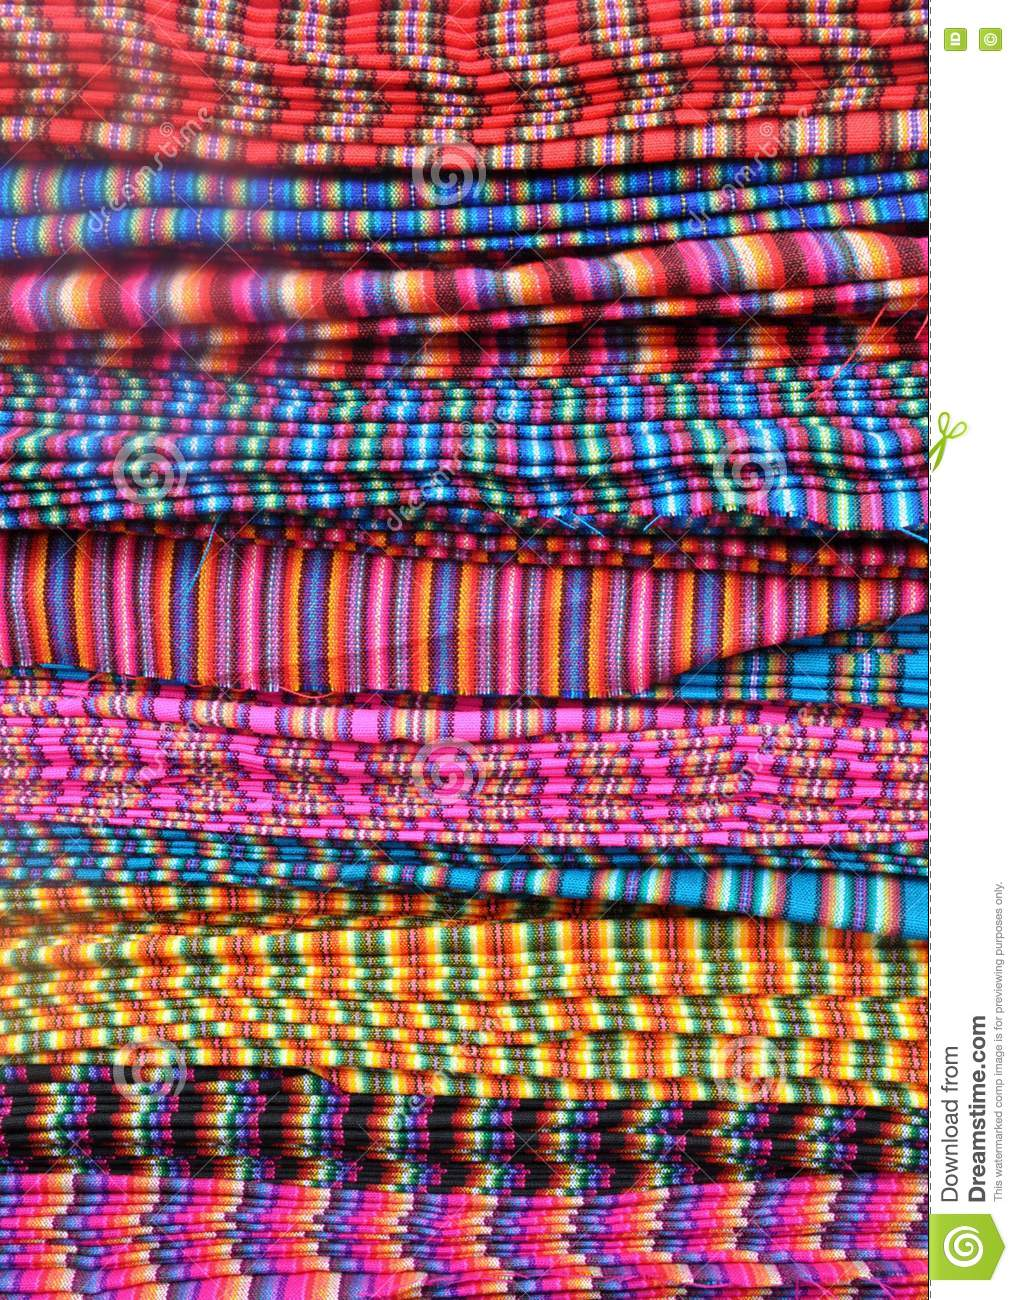 Traditional patterned fabric in ecuador stock image for Patterned material fabric